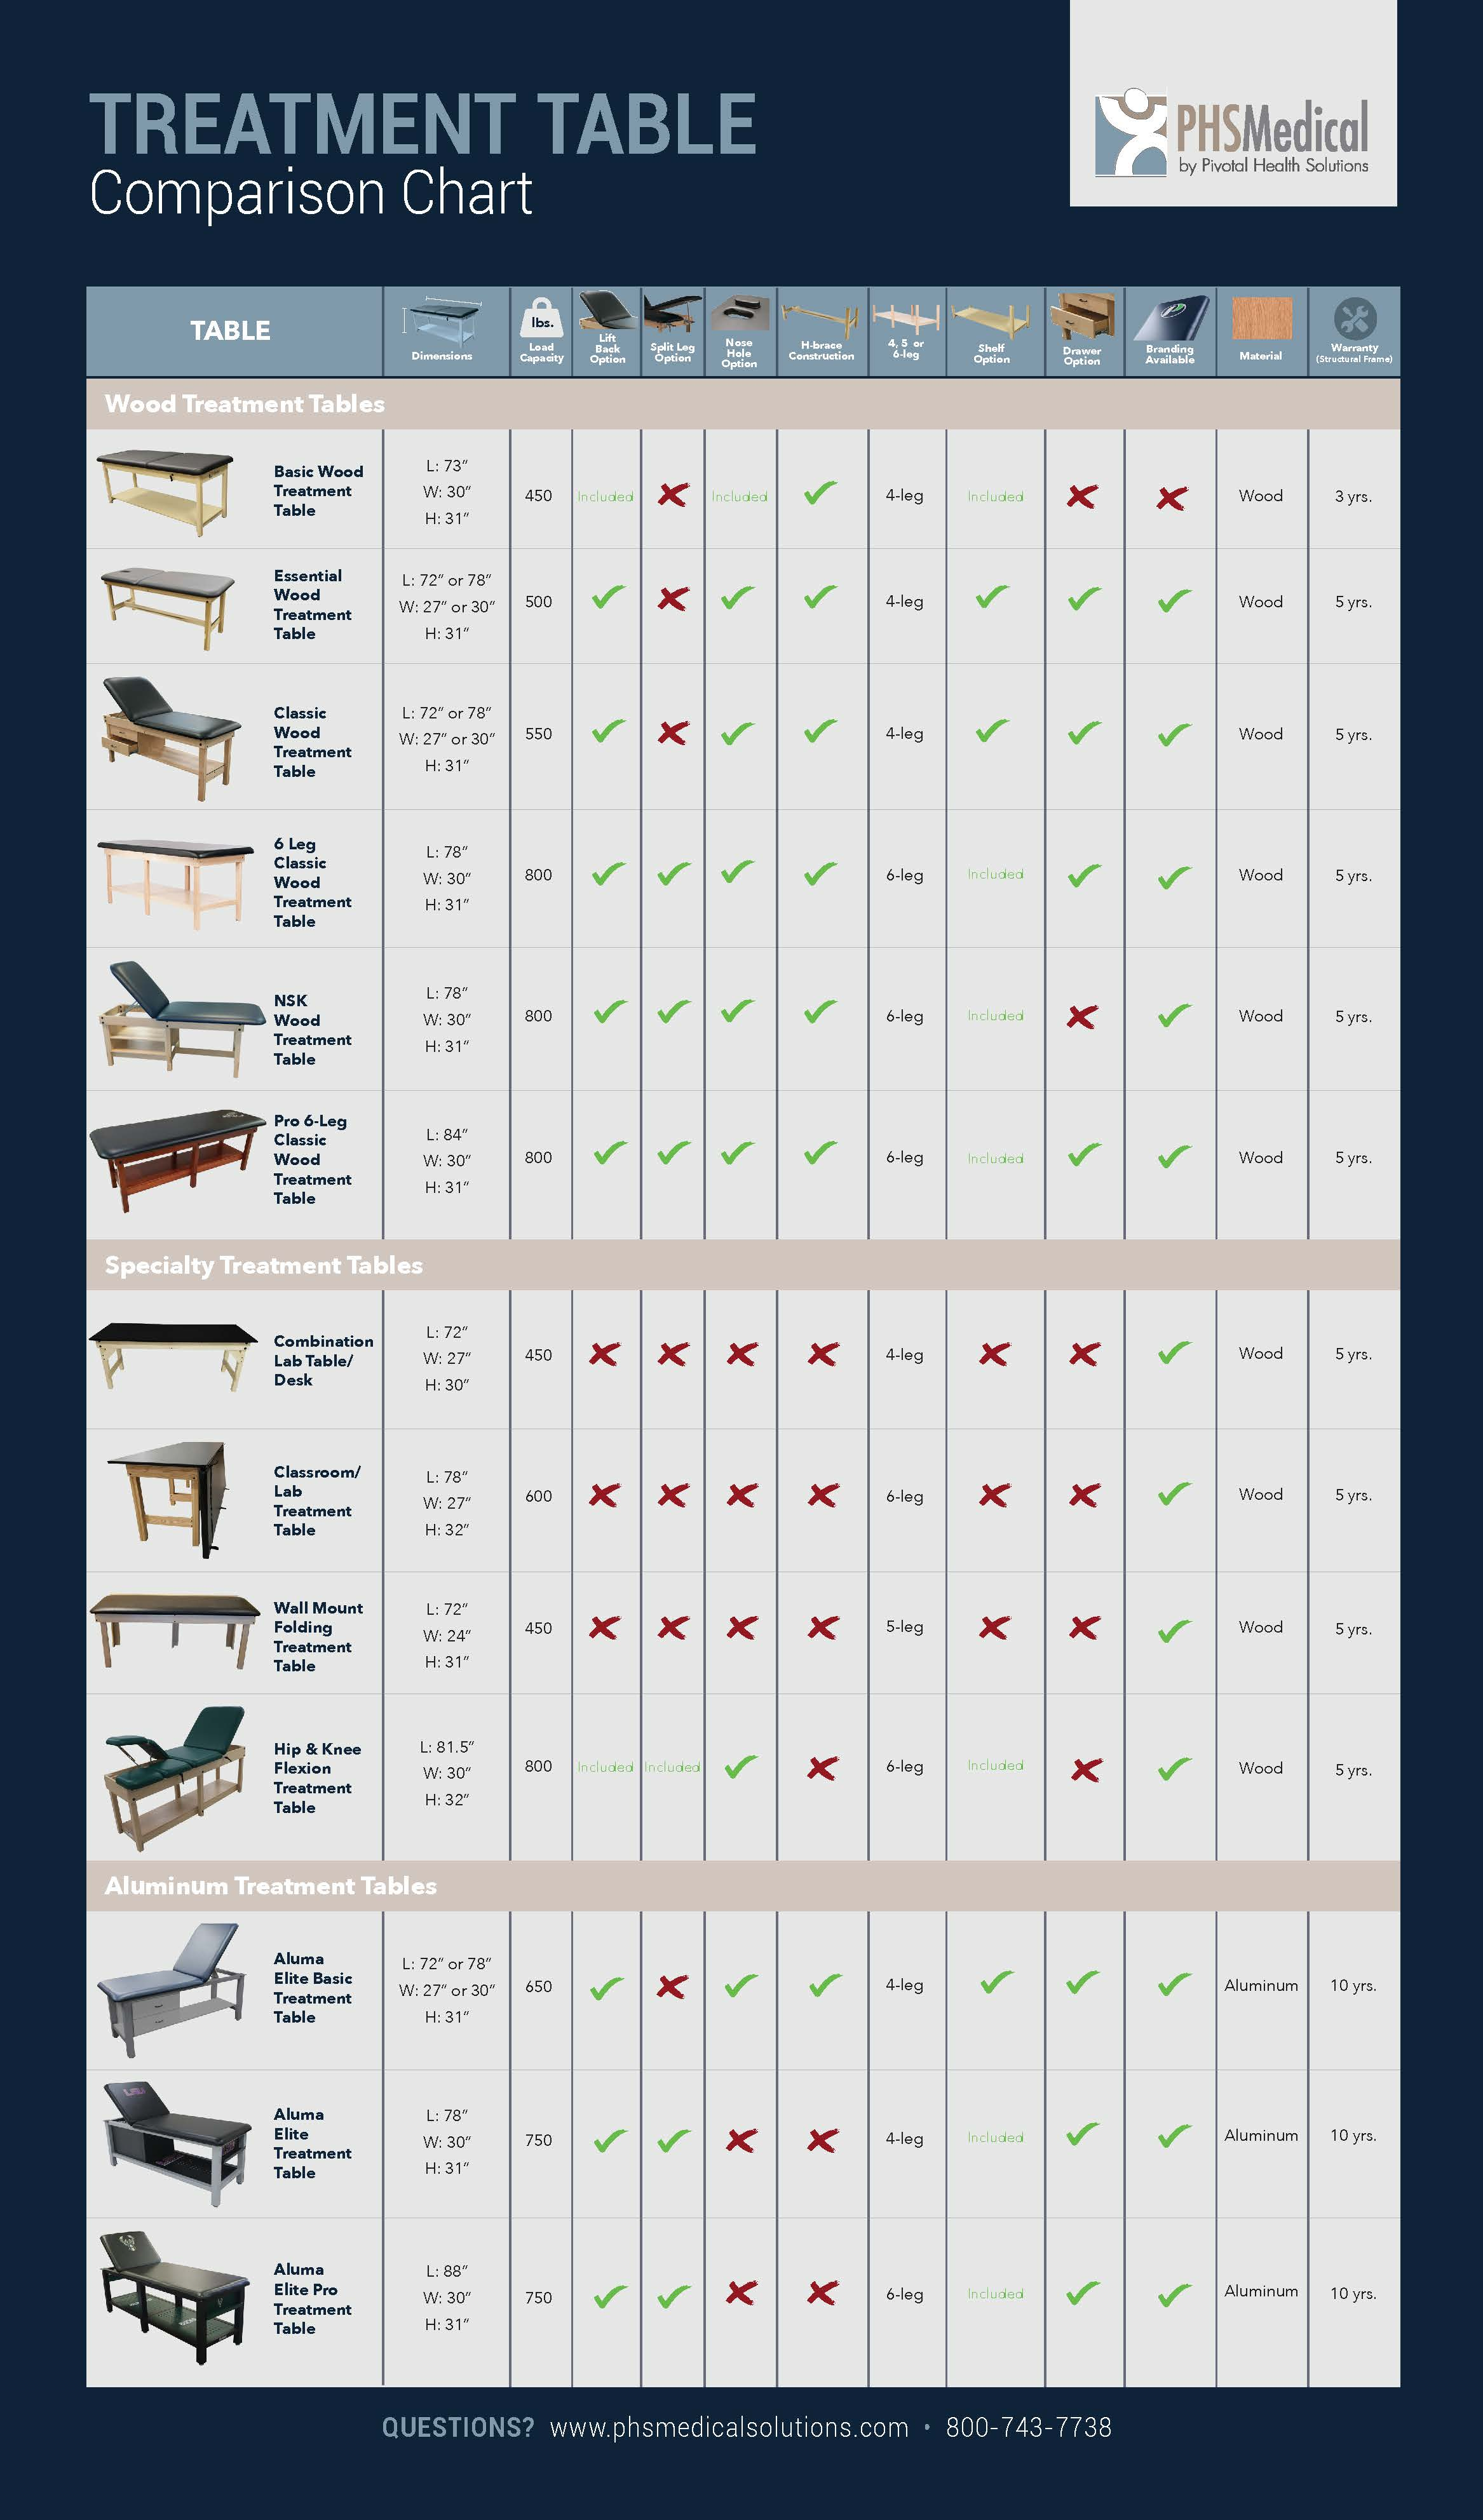 PT_TableComparison_Chart2019